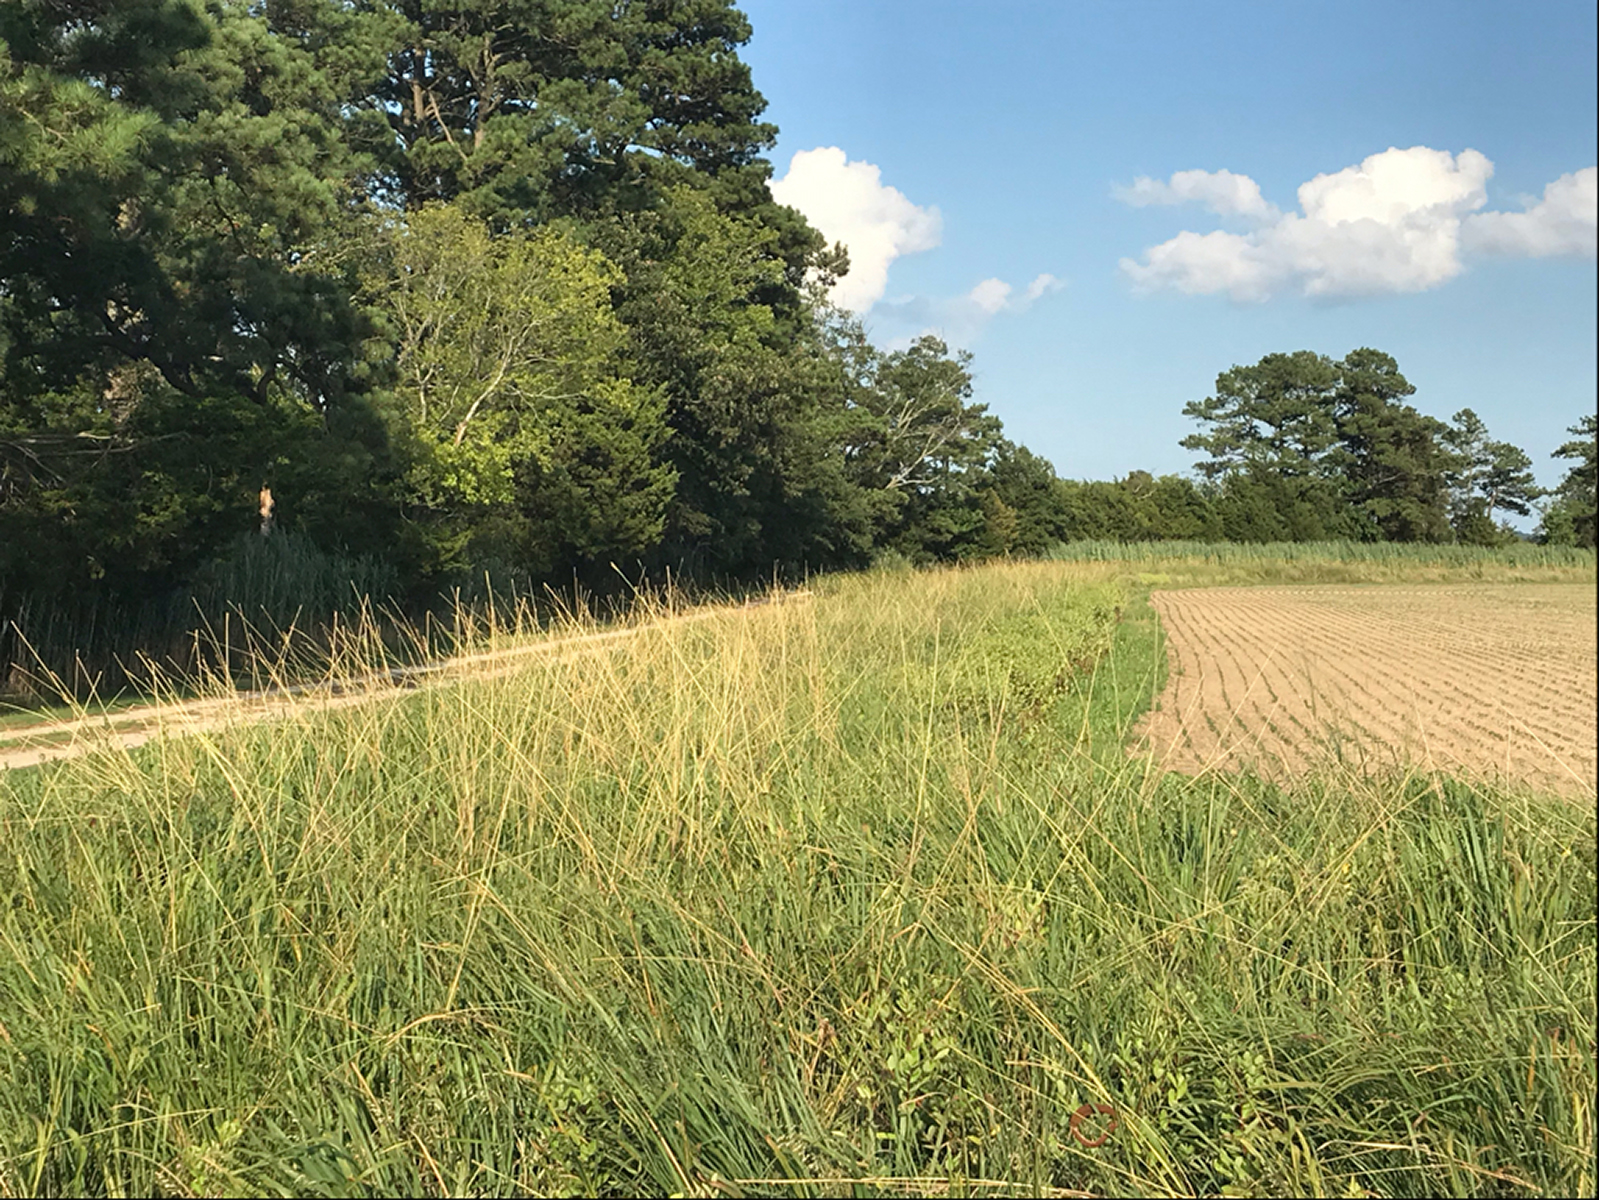 Soybean field more protected by an herbaceous riparian buffer